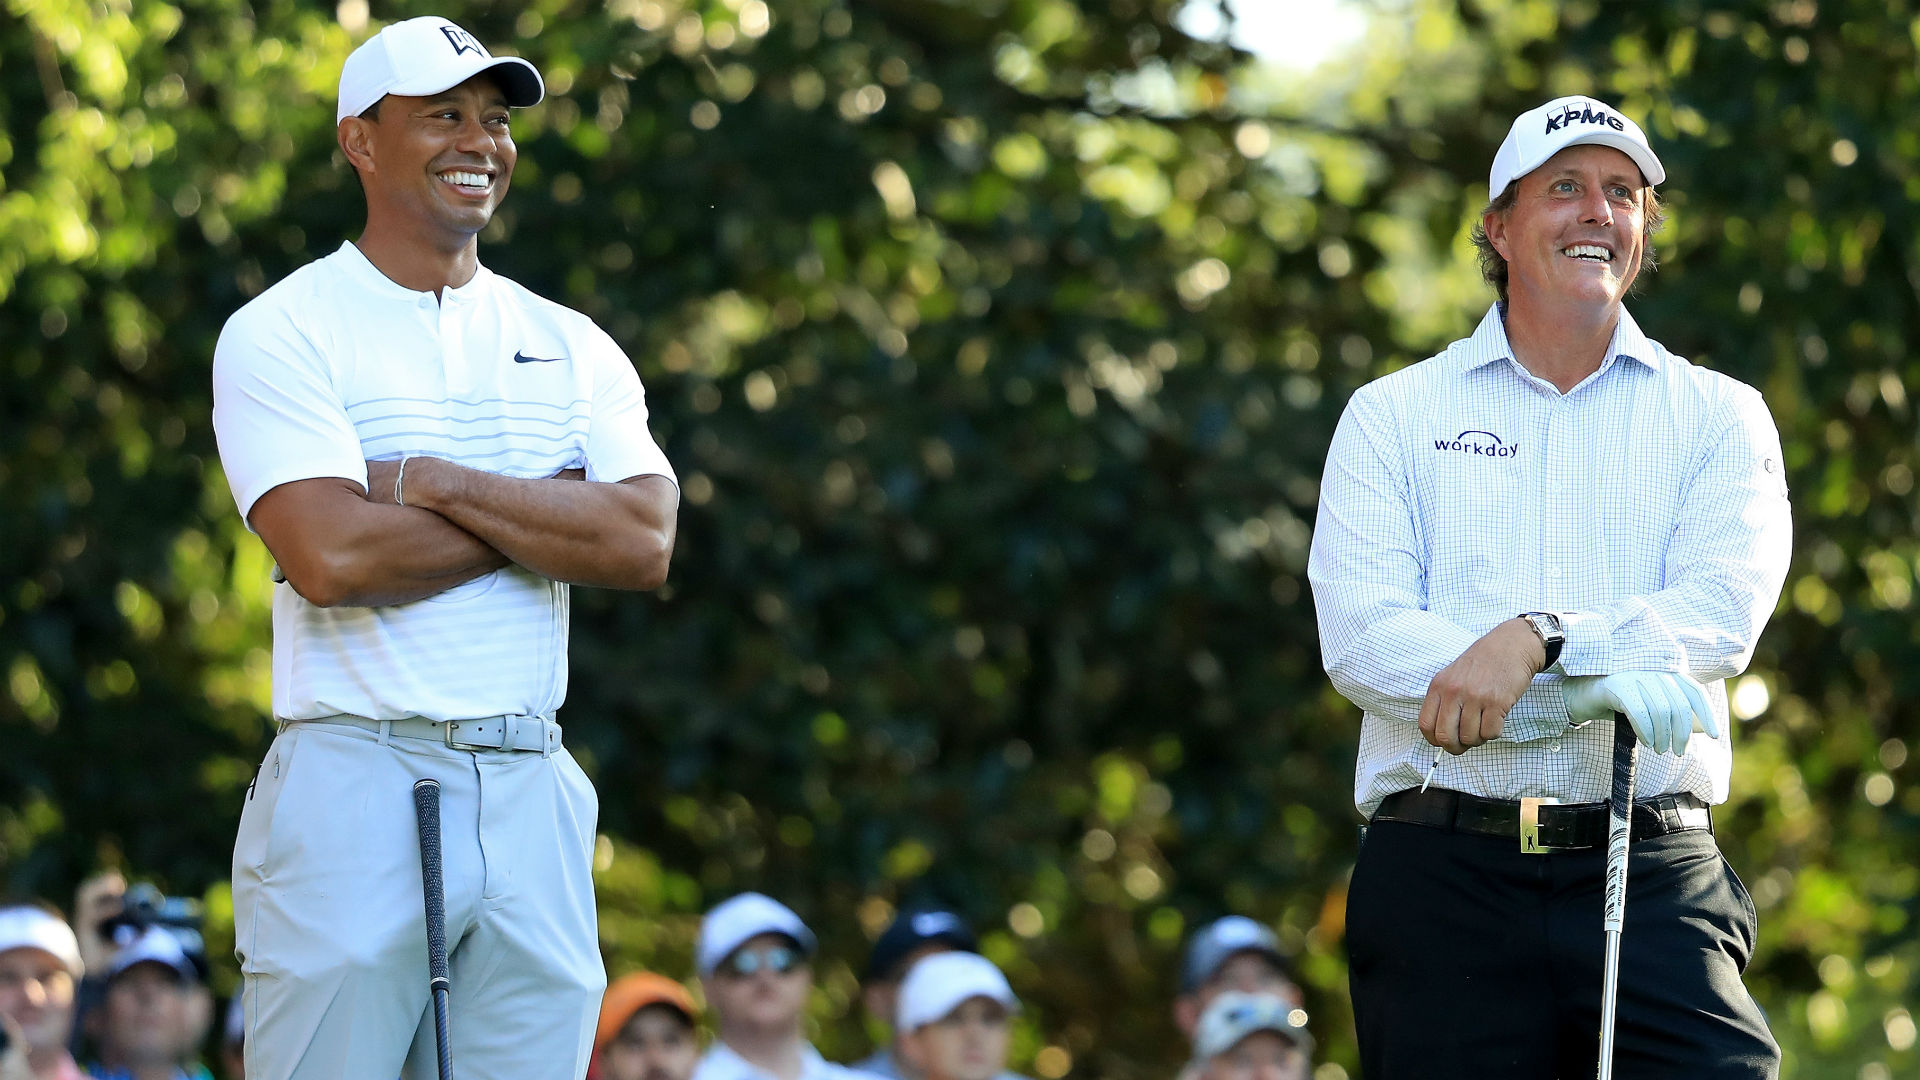 Glaring error, trash talk shocks Twitter after confirmed Tiger vs. Phil match